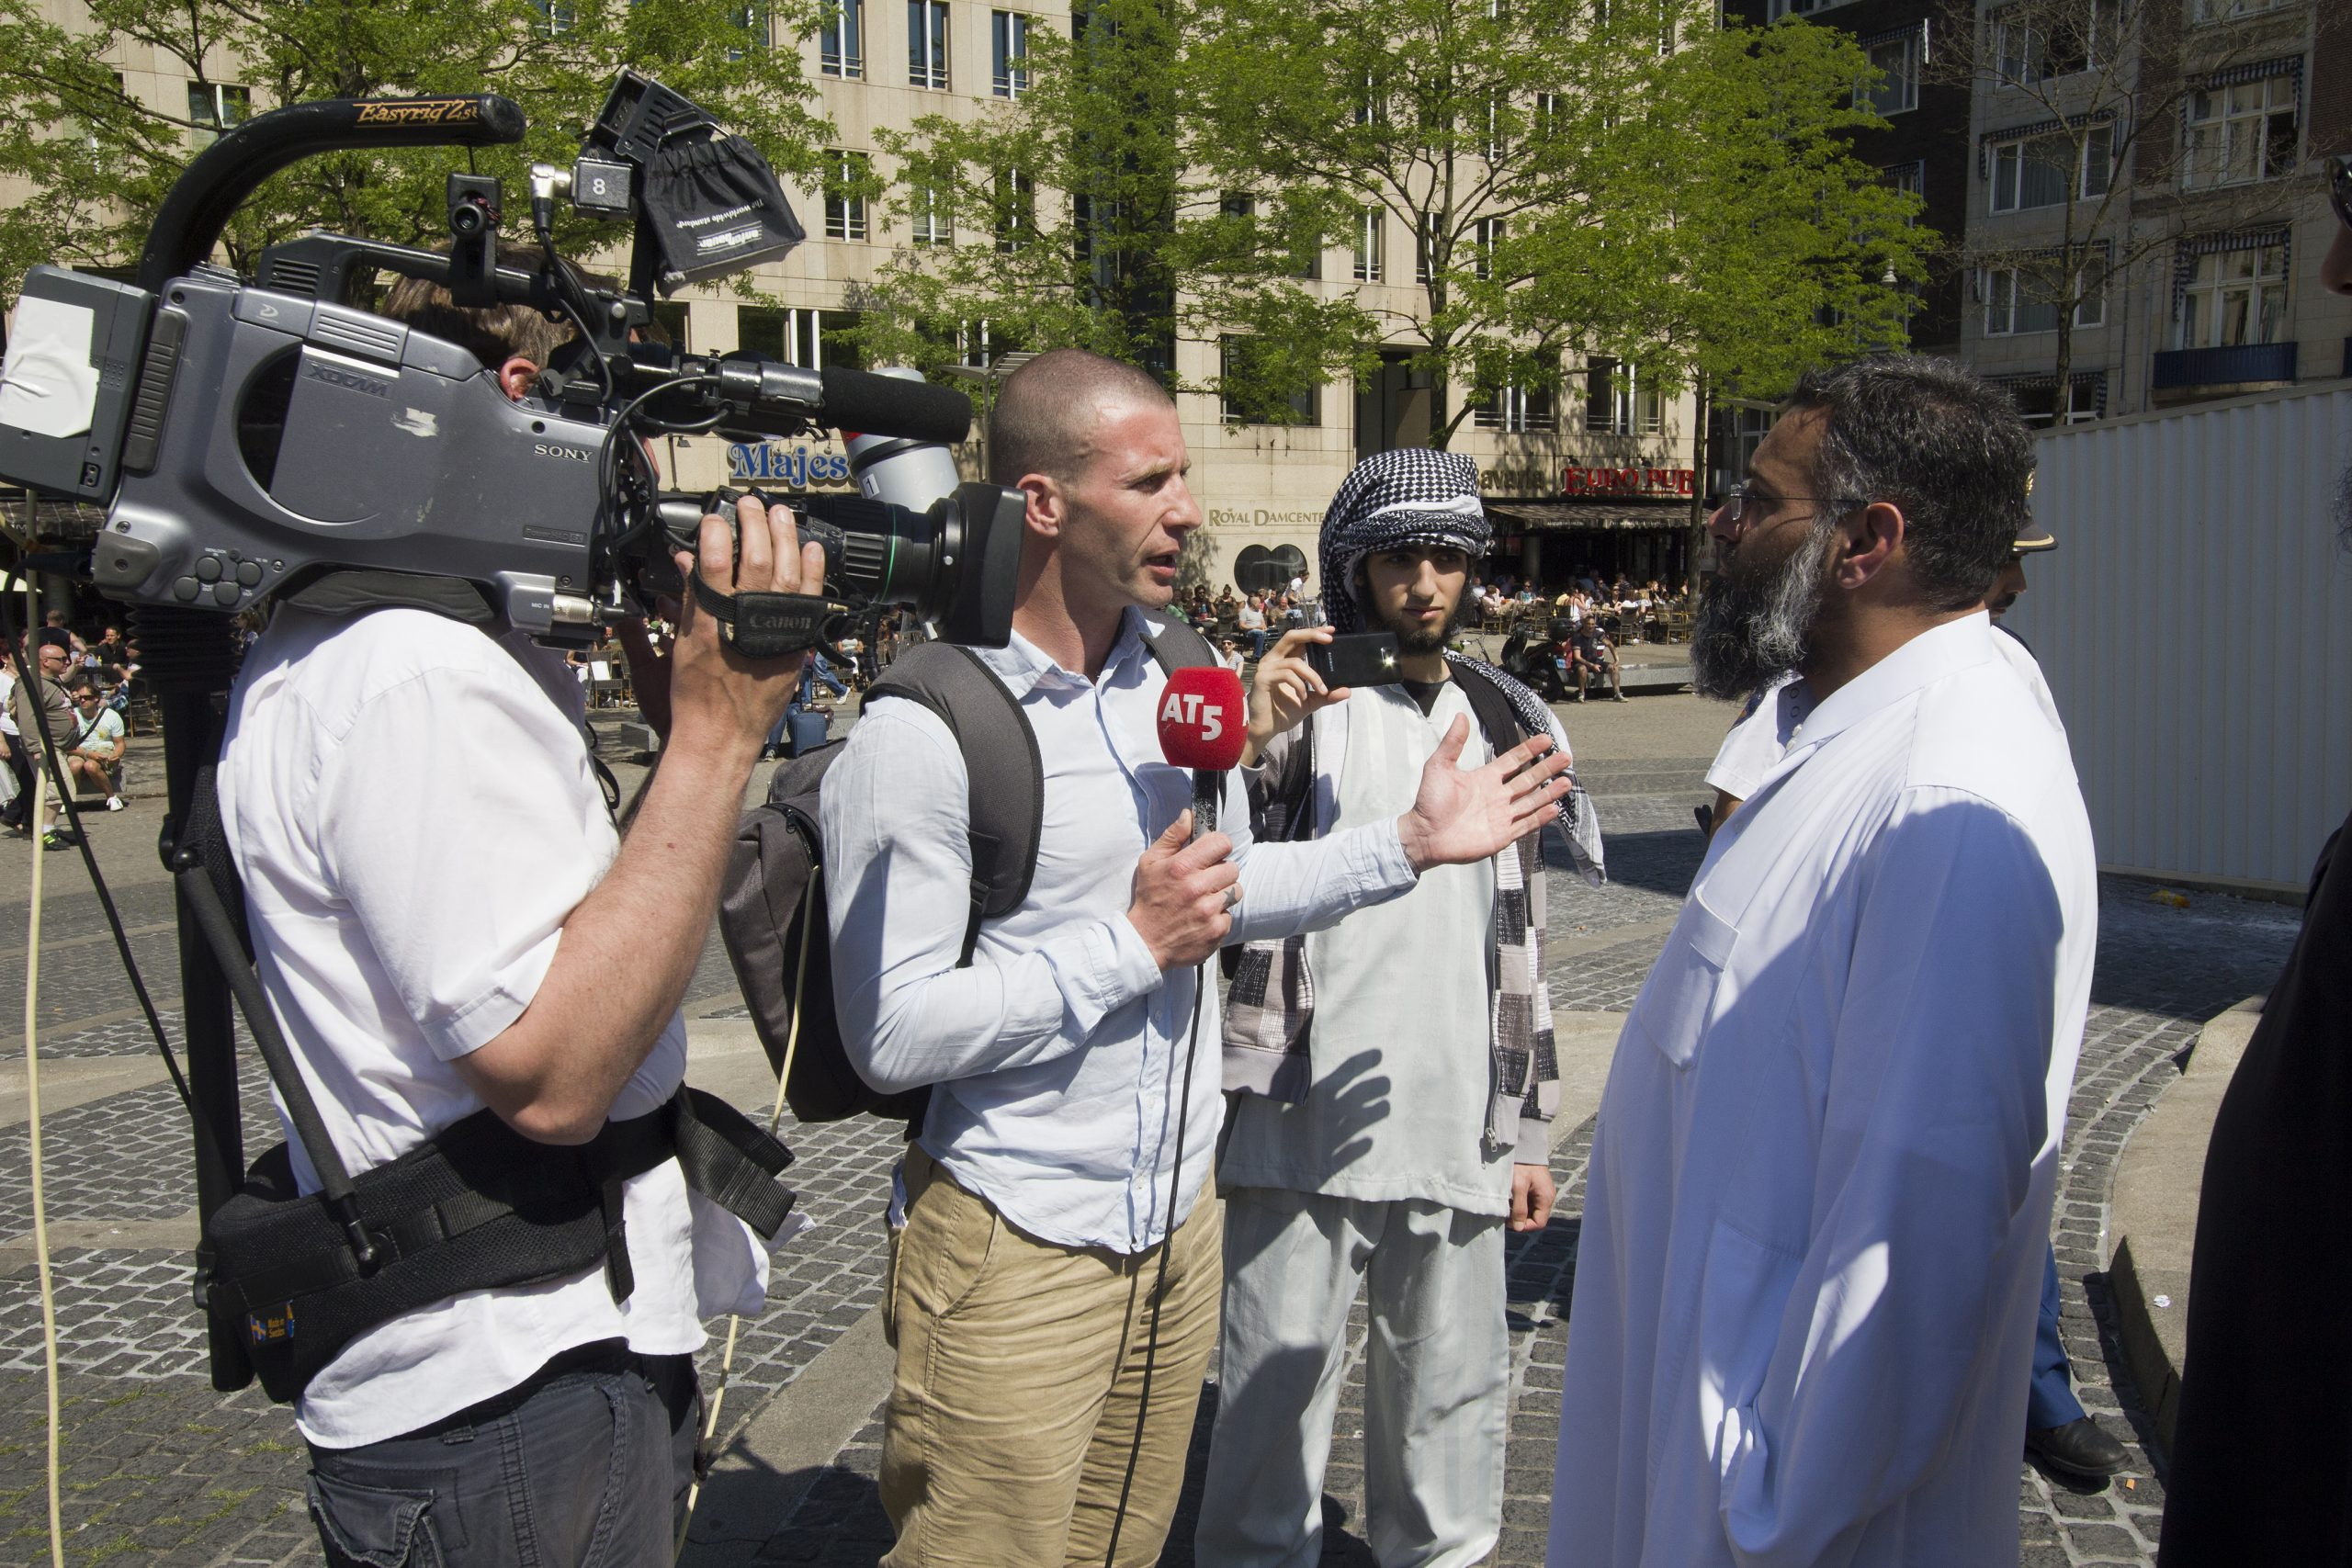 Radical preacher Anjem Choudary's public speaking ban lifted